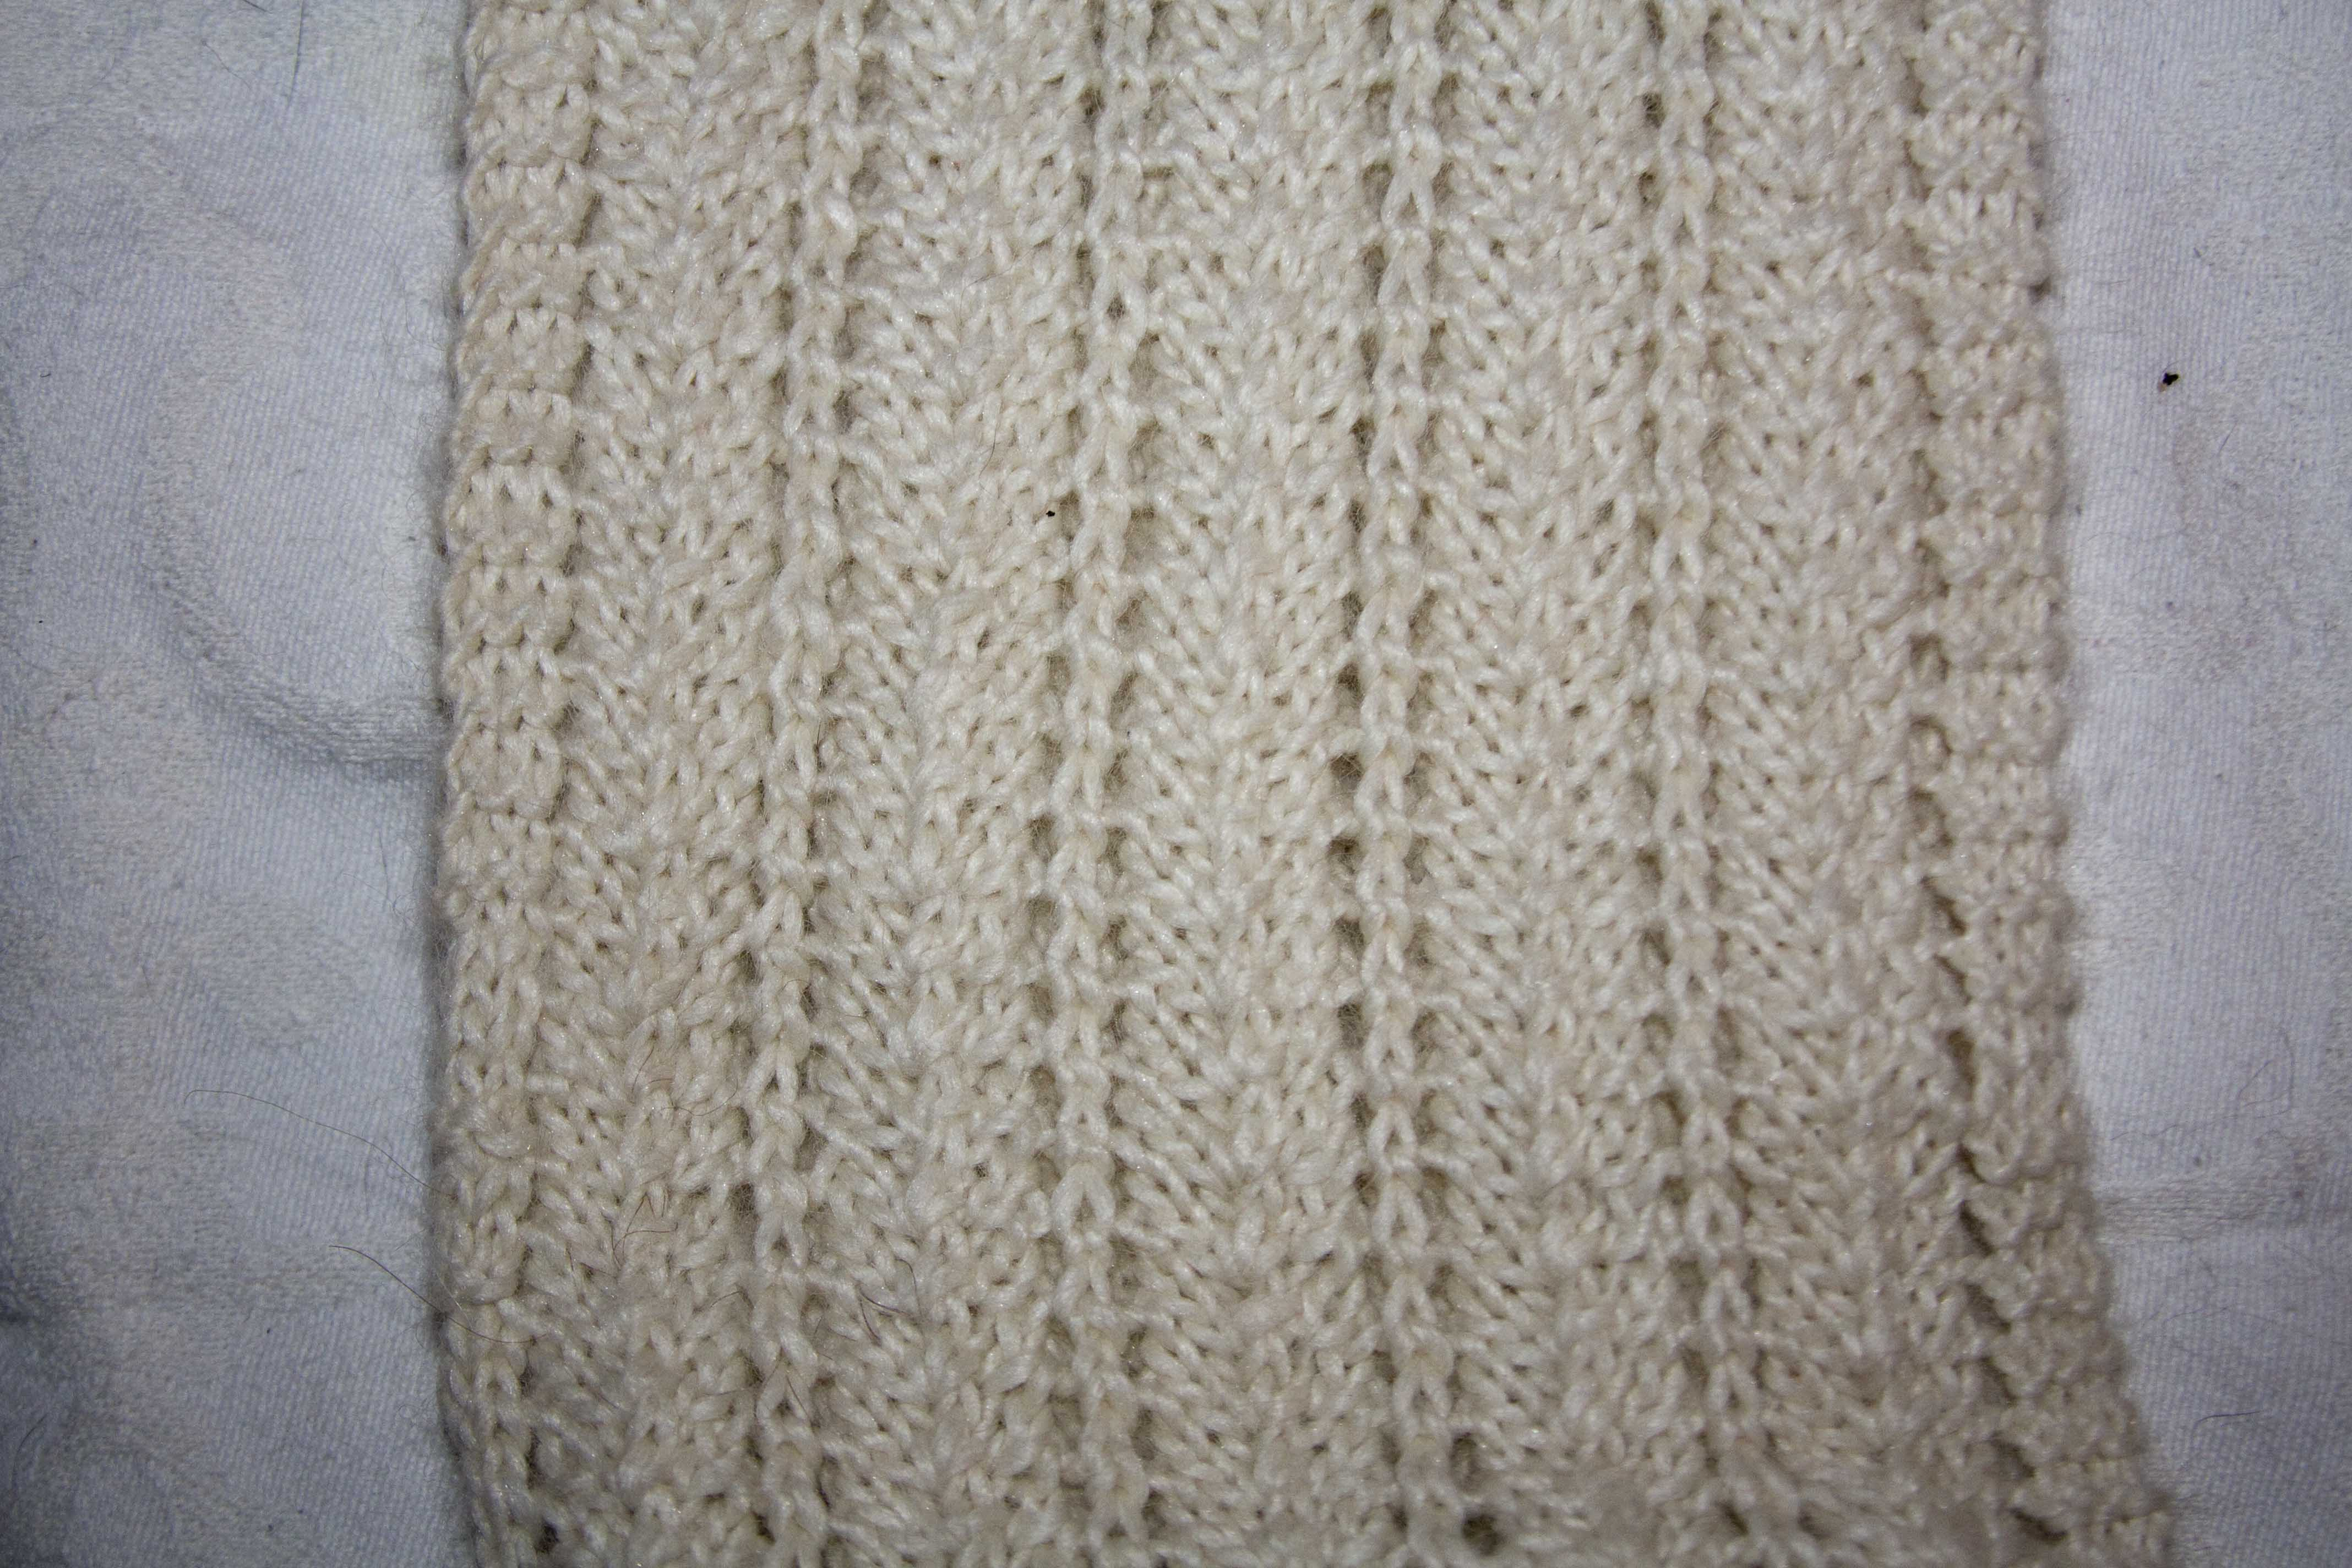 Knitting Pattern Central Gallery - handicraft ideas home decorating